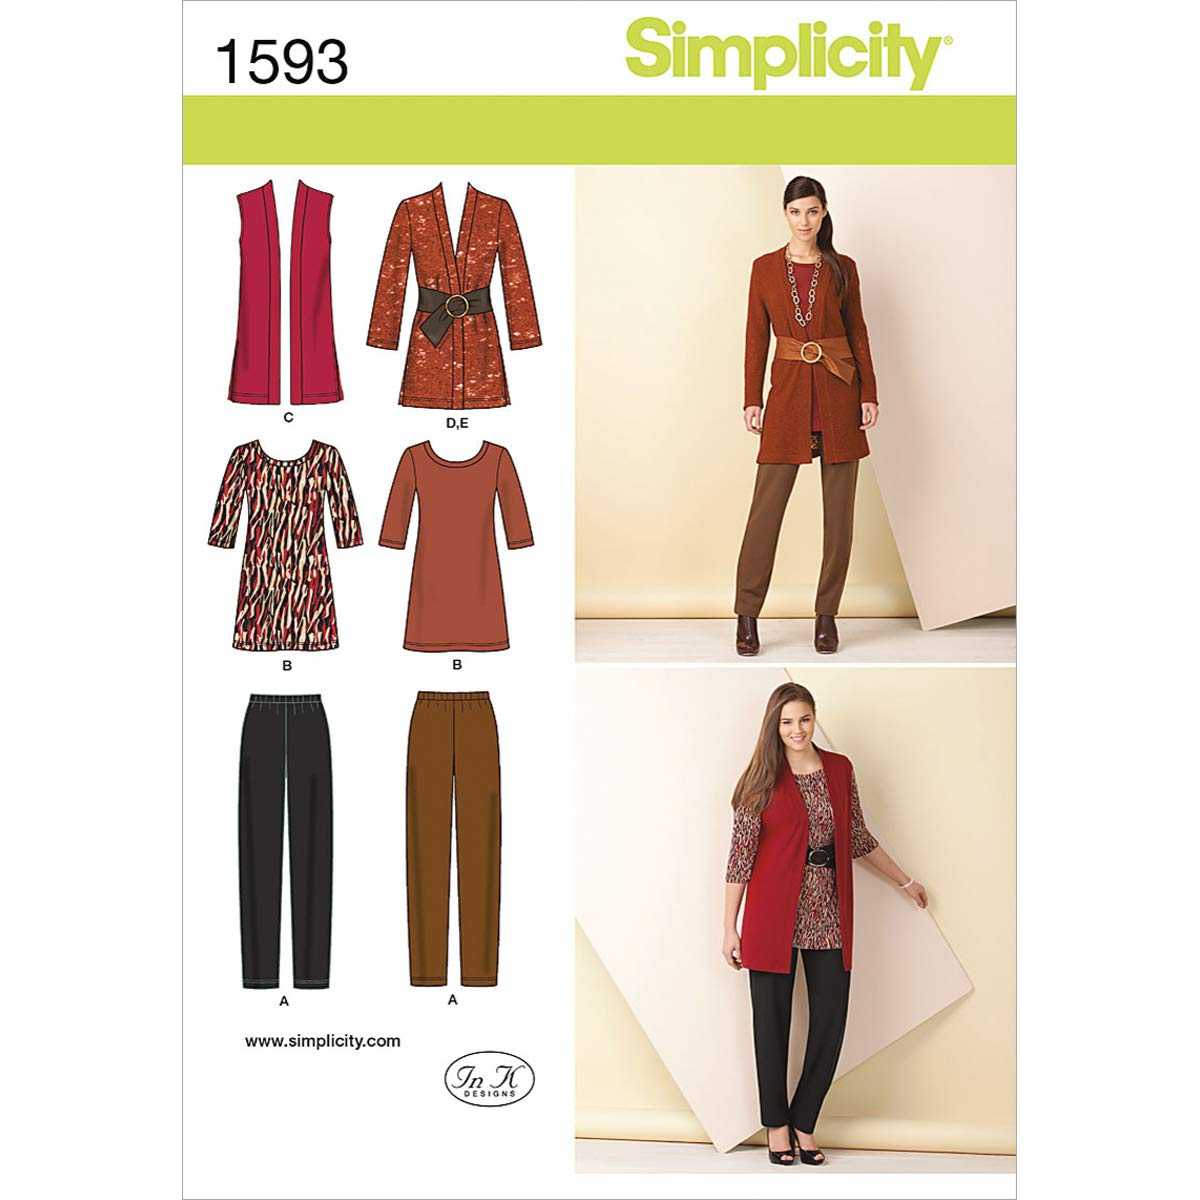 Simplicity Pattern 1593 Misses Knit Slim Pants, Tunic, Jacket, Vest, Belt Size 10-12-14-16-18 Simplicity Creative Patterns